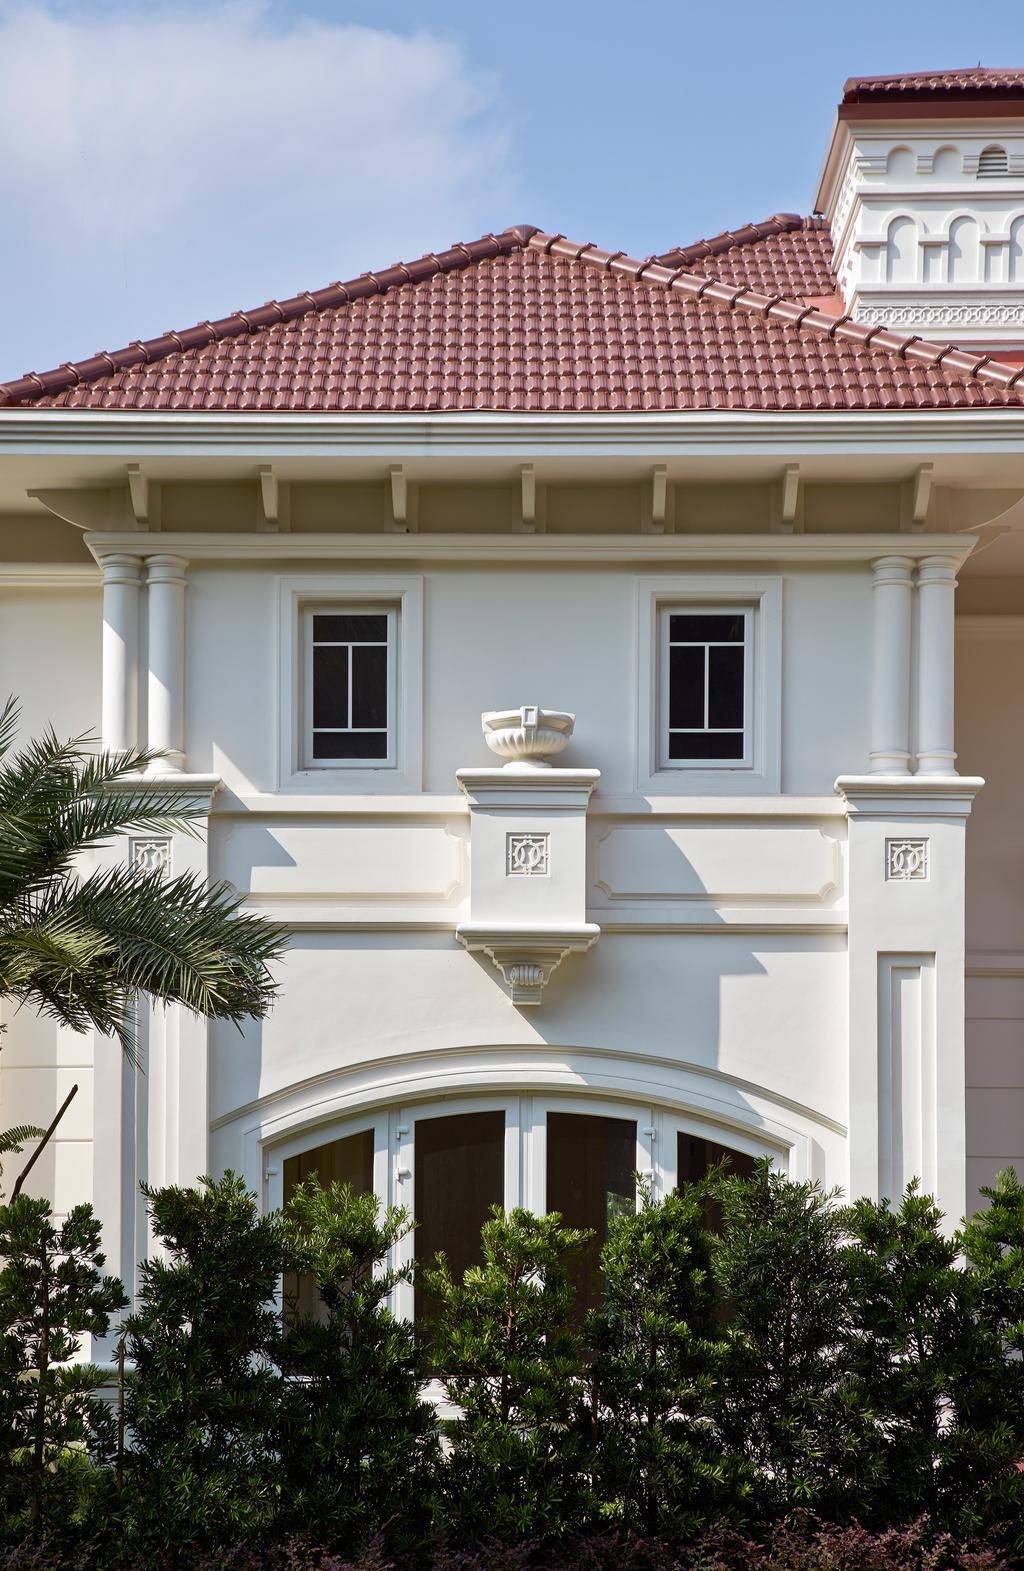 Transitional, Landed, Cove Drive 5, Architect, Greg Shand Architects, Exterior View, Plantations, Plants, Bushes, Grass Patch, Colonial Style, Flora, Jar, Plant, Potted Plant, Pottery, Vase, Arecaceae, Palm Tree, Tree, Window, Building, House, Housing, Villa, Molding